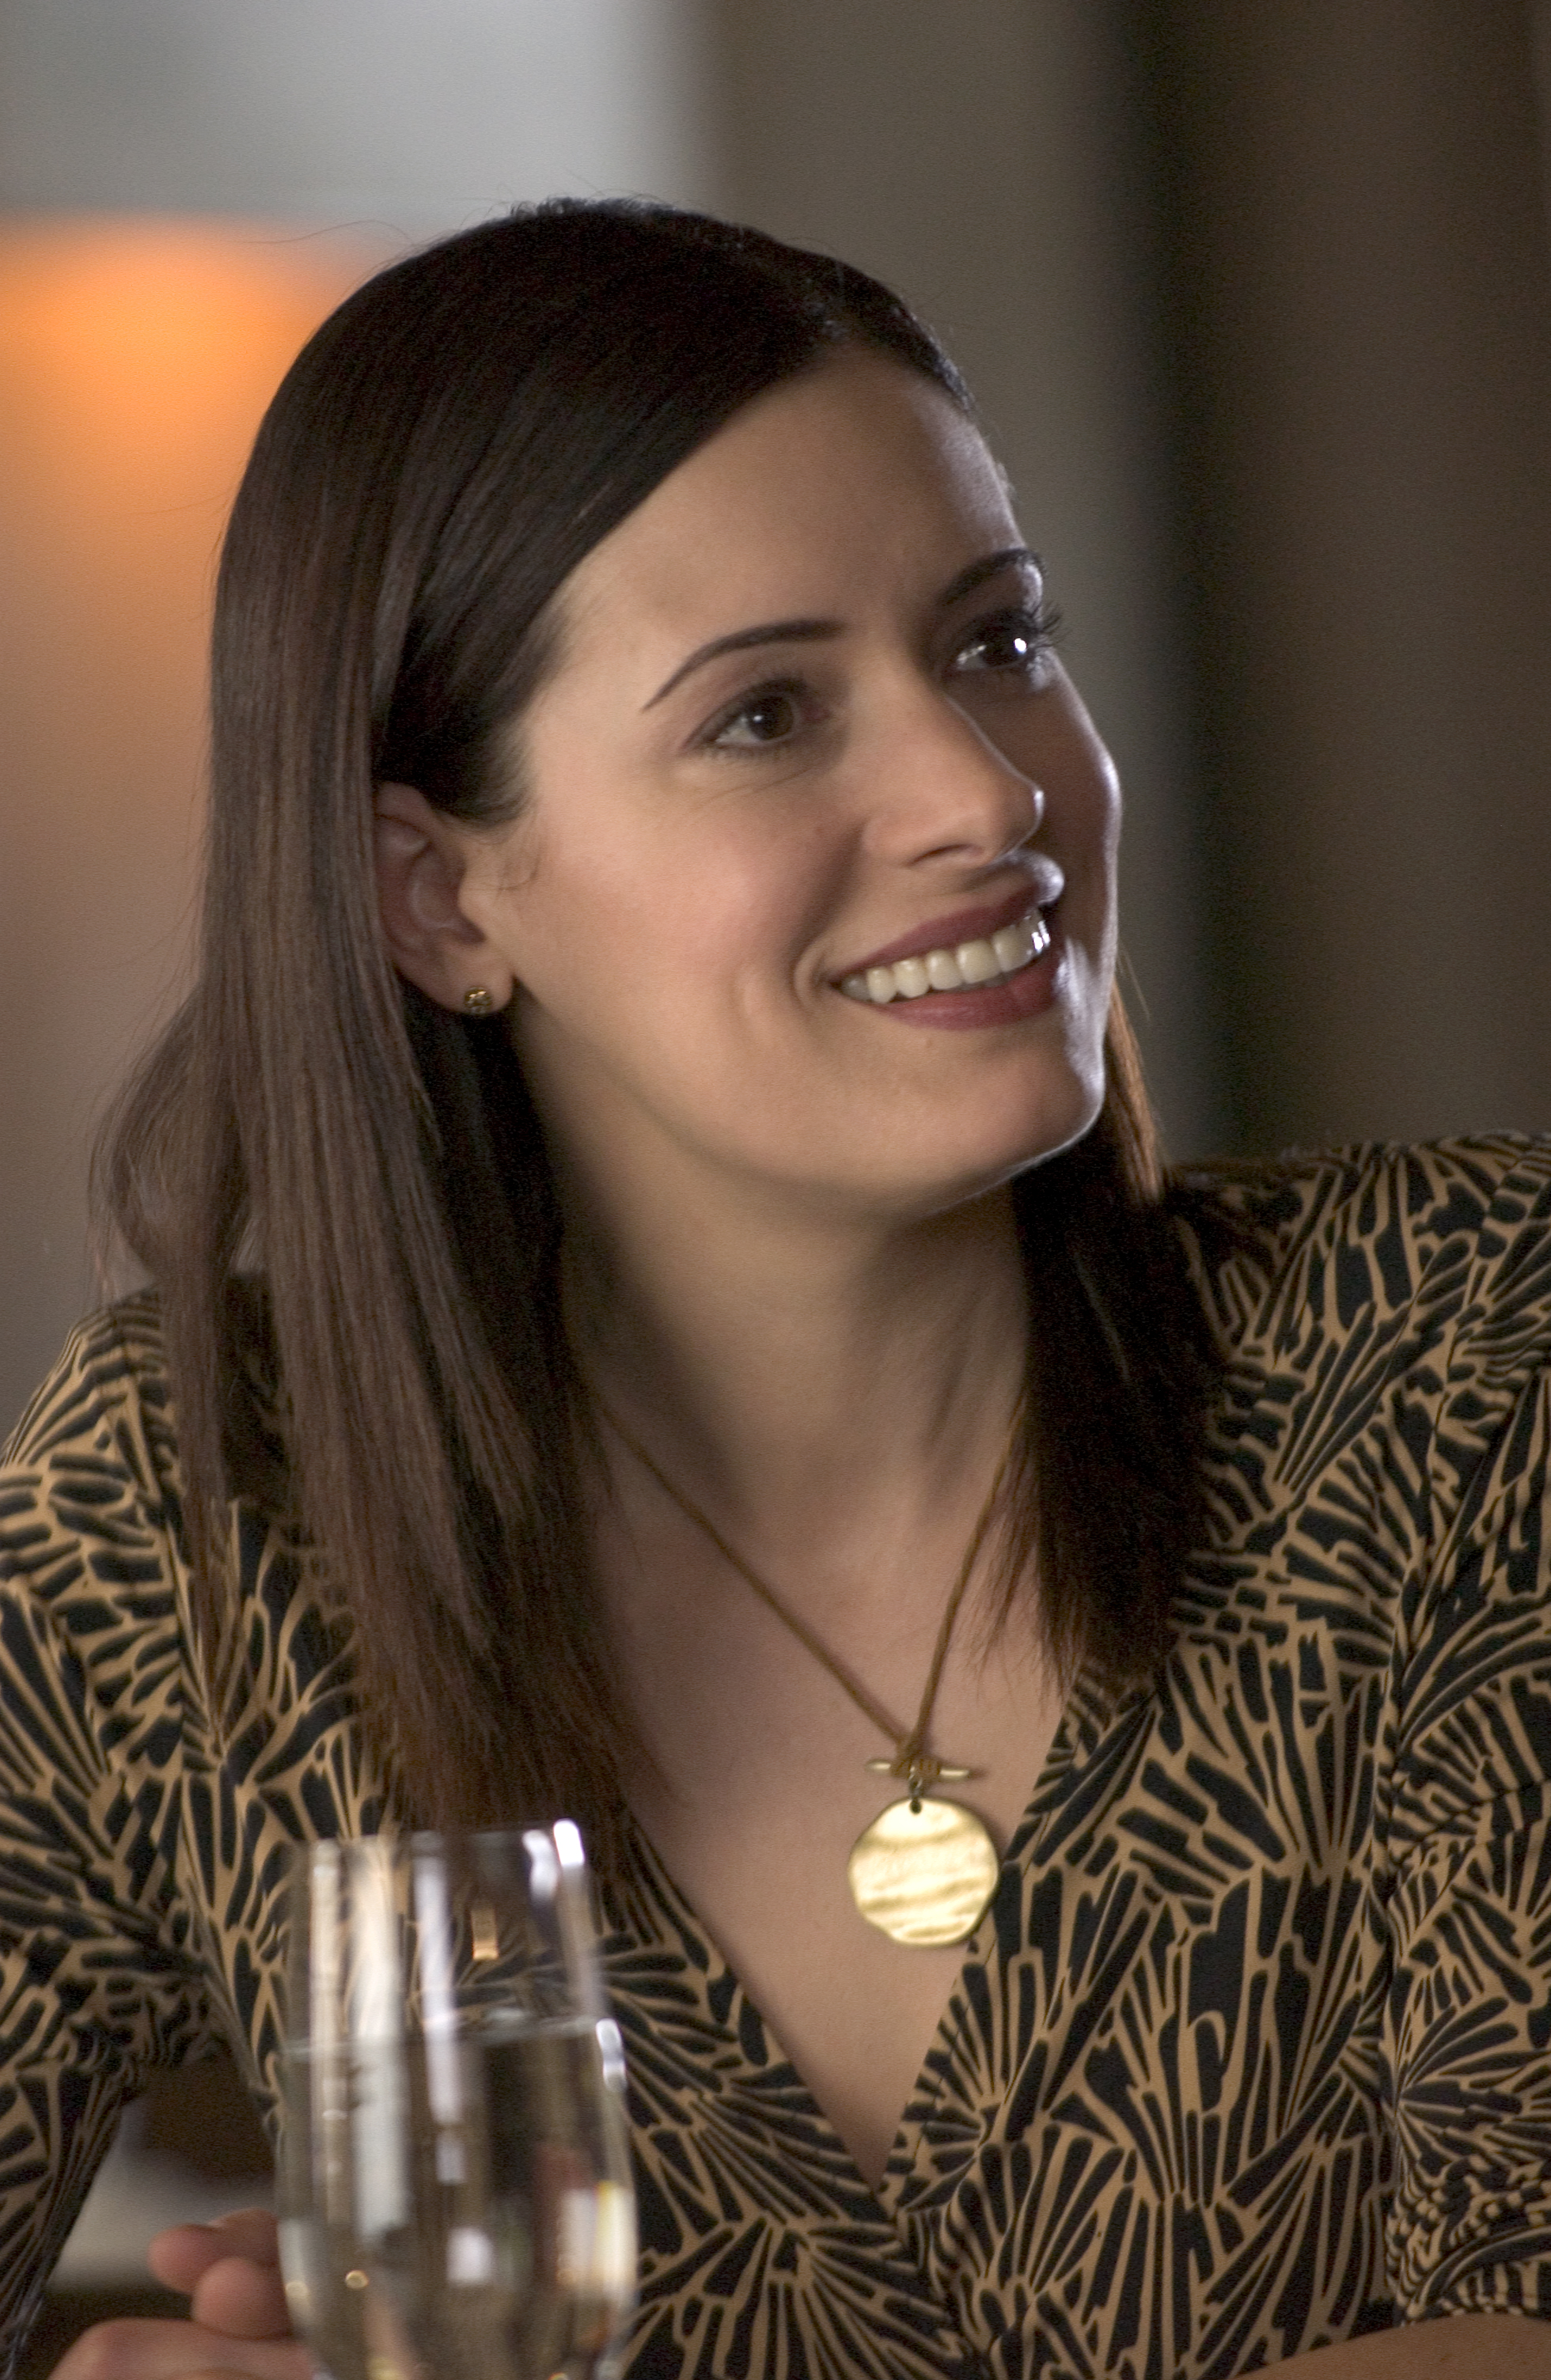 Paget Brewster But here with neutral-neutral it's better ...